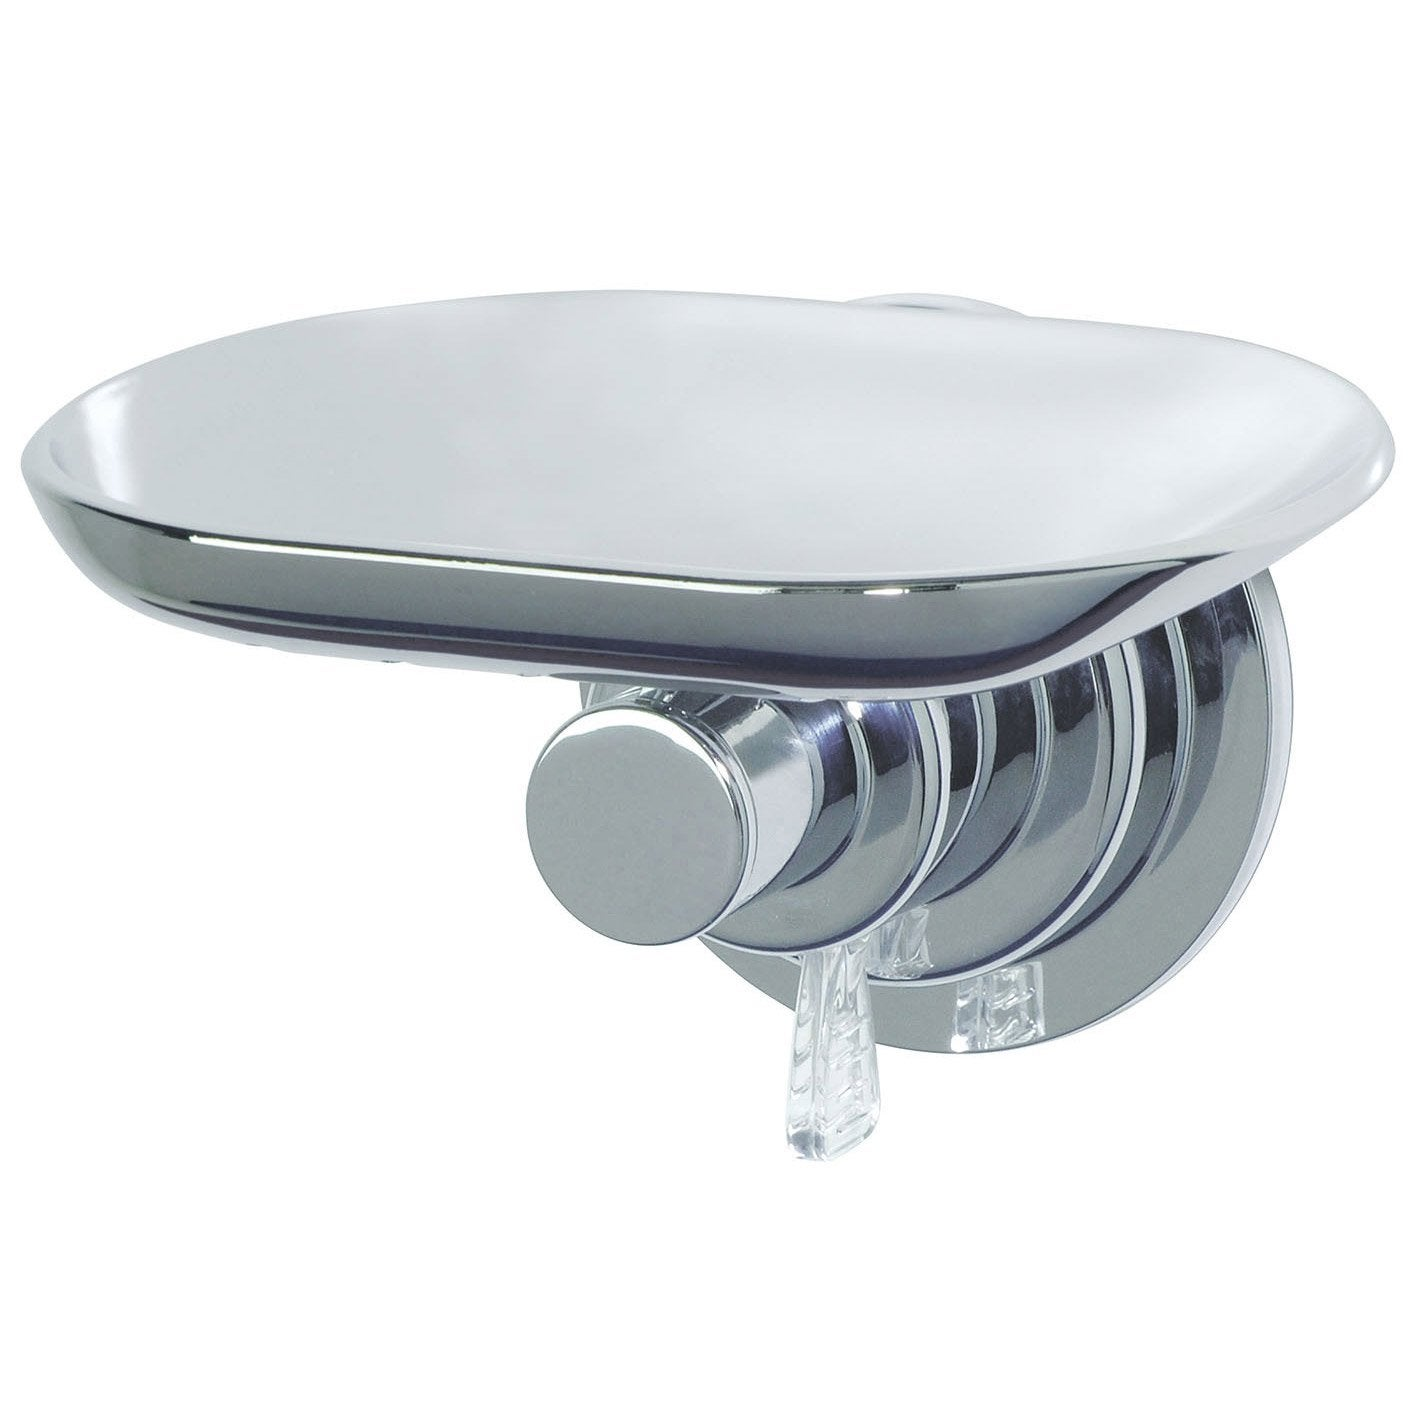 Porte savon chrome a ventouses leroy merlin for Porte savon douche